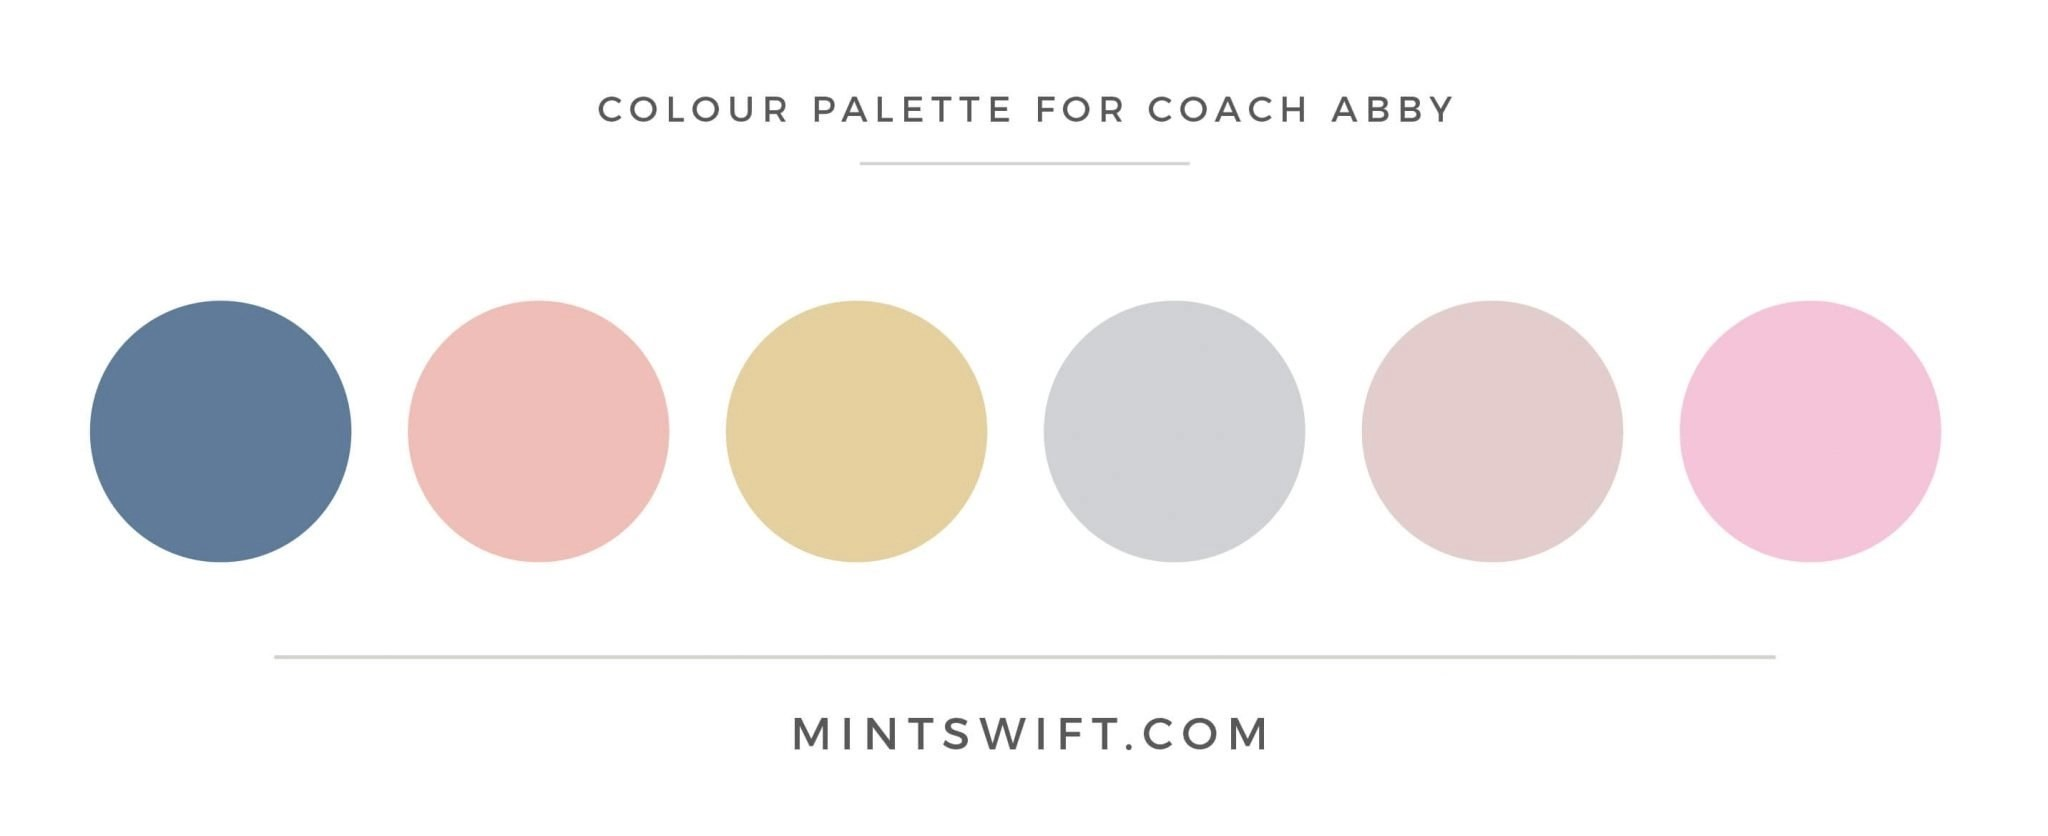 Coach Abby - Colour Palette - Brand Design - MintSwift